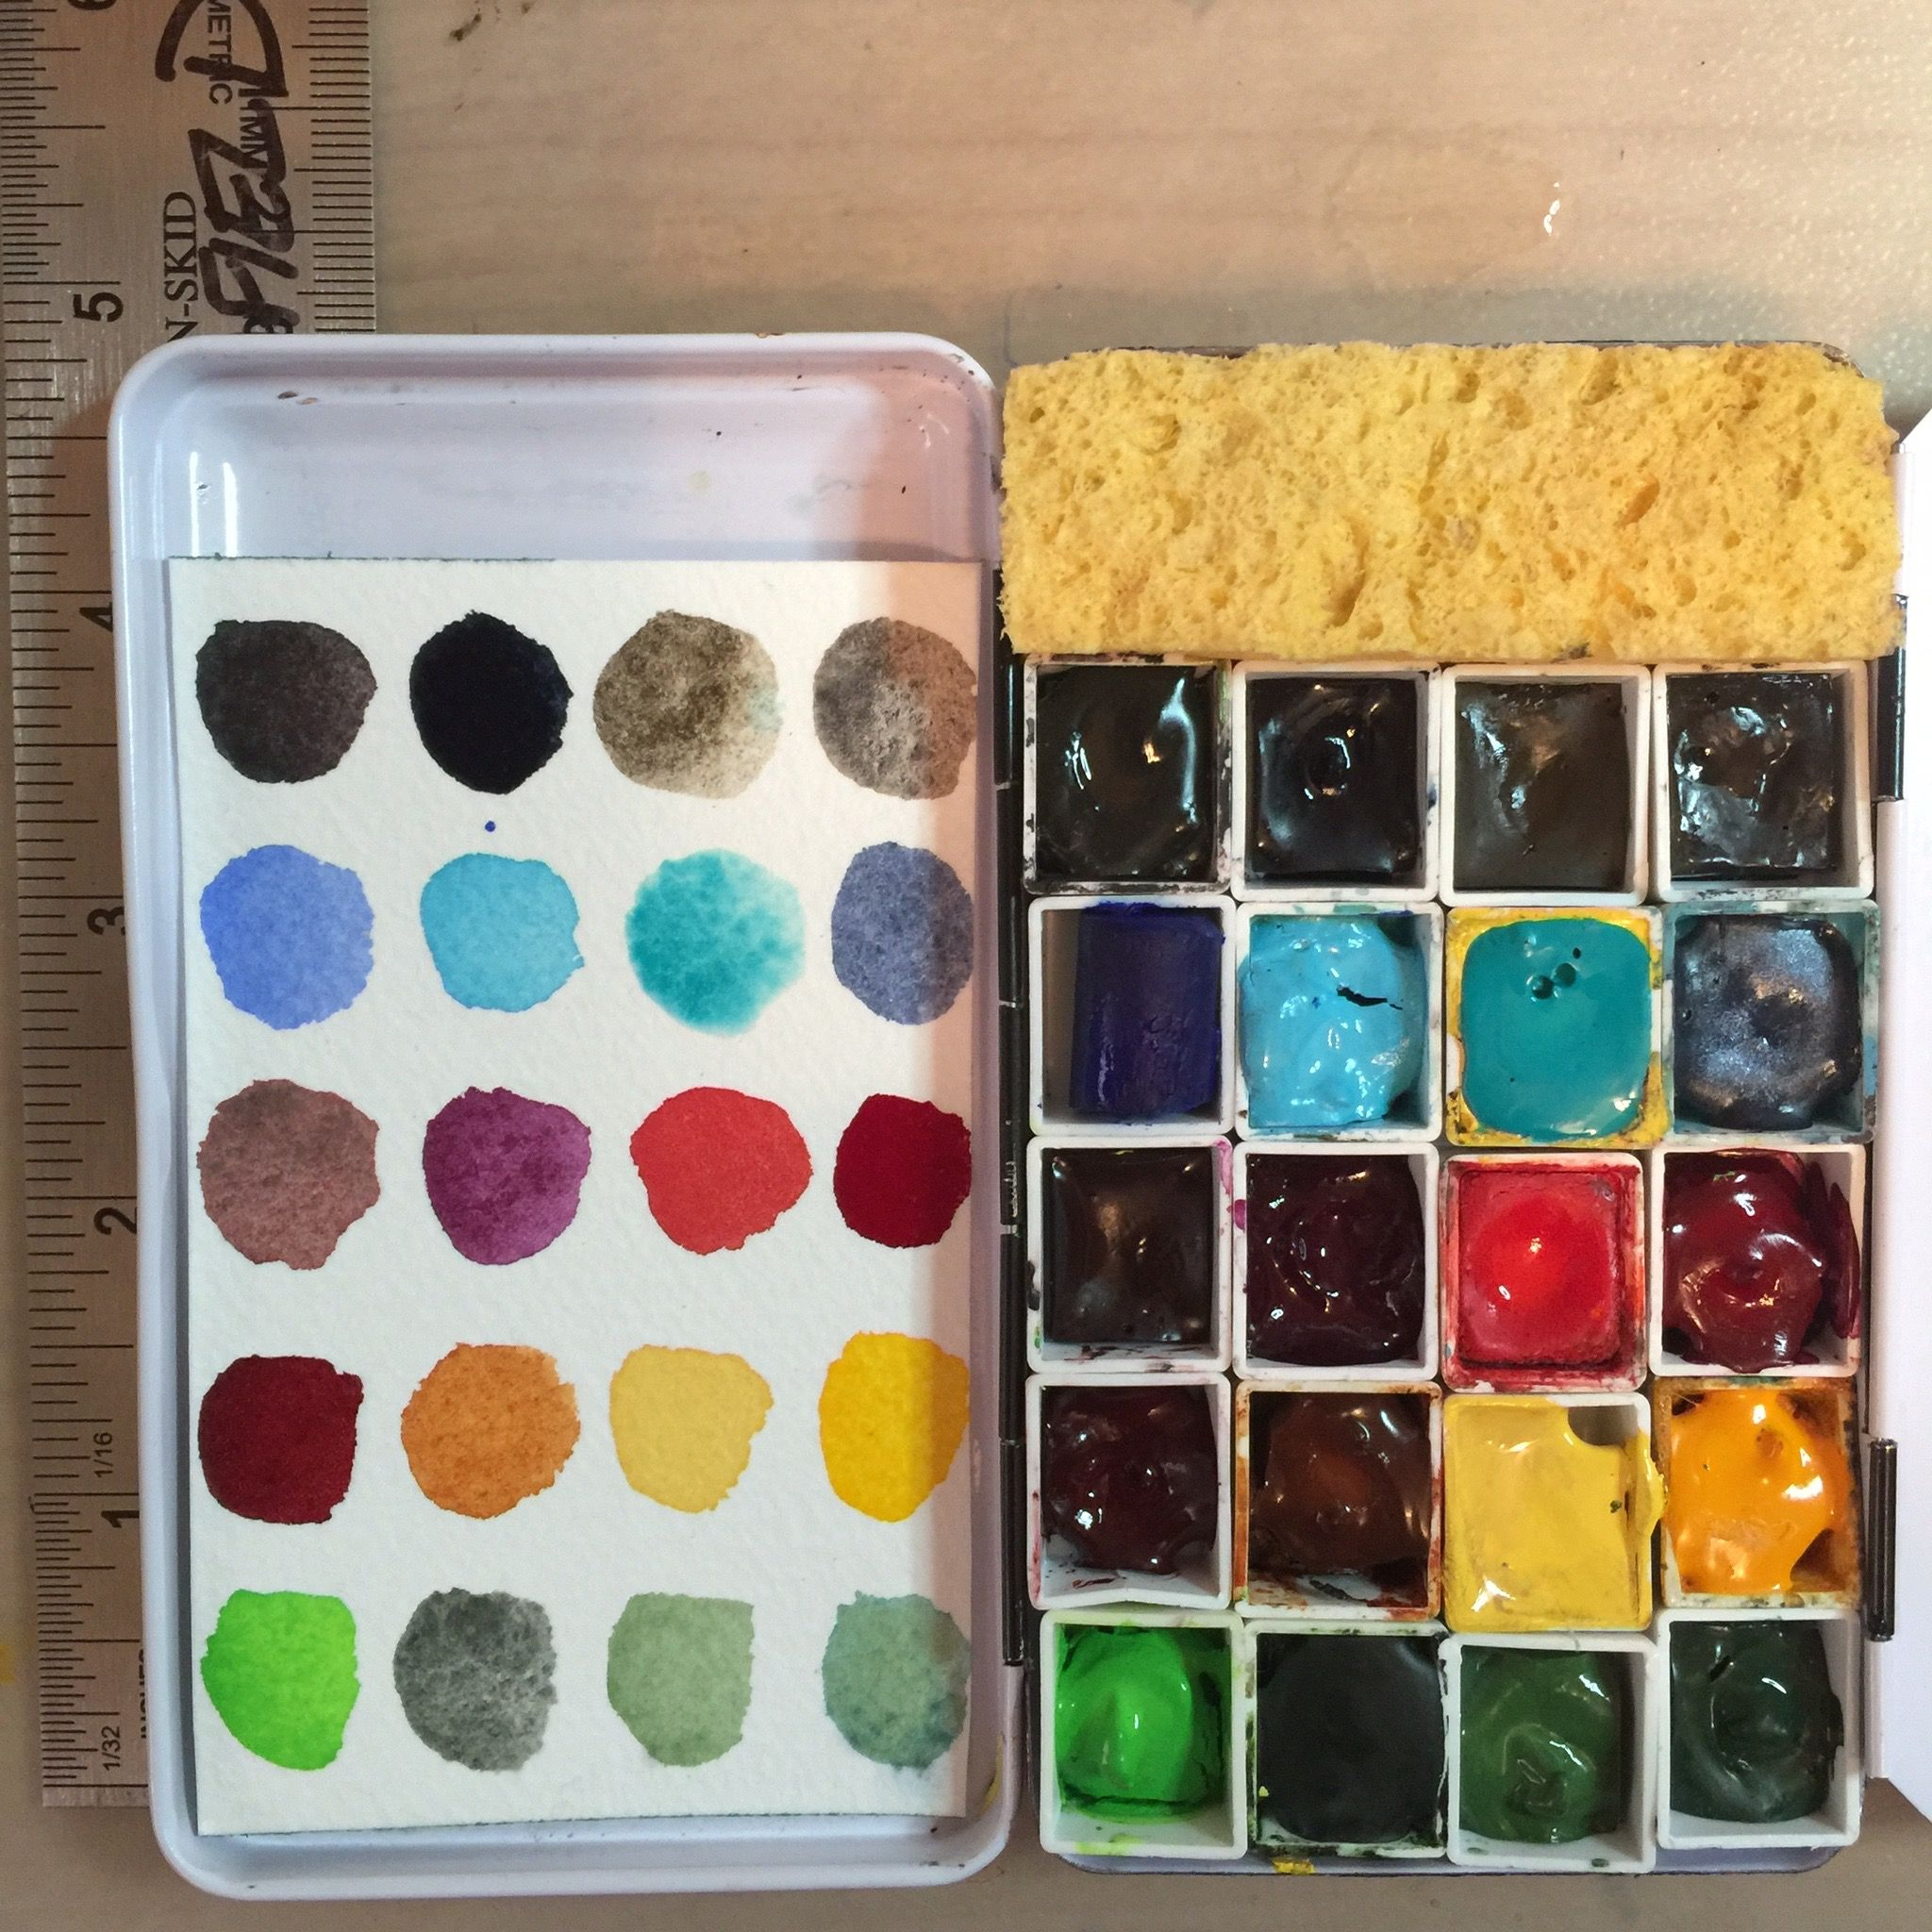 Preparing A Travel Palette Watercolor Kit Palette Art